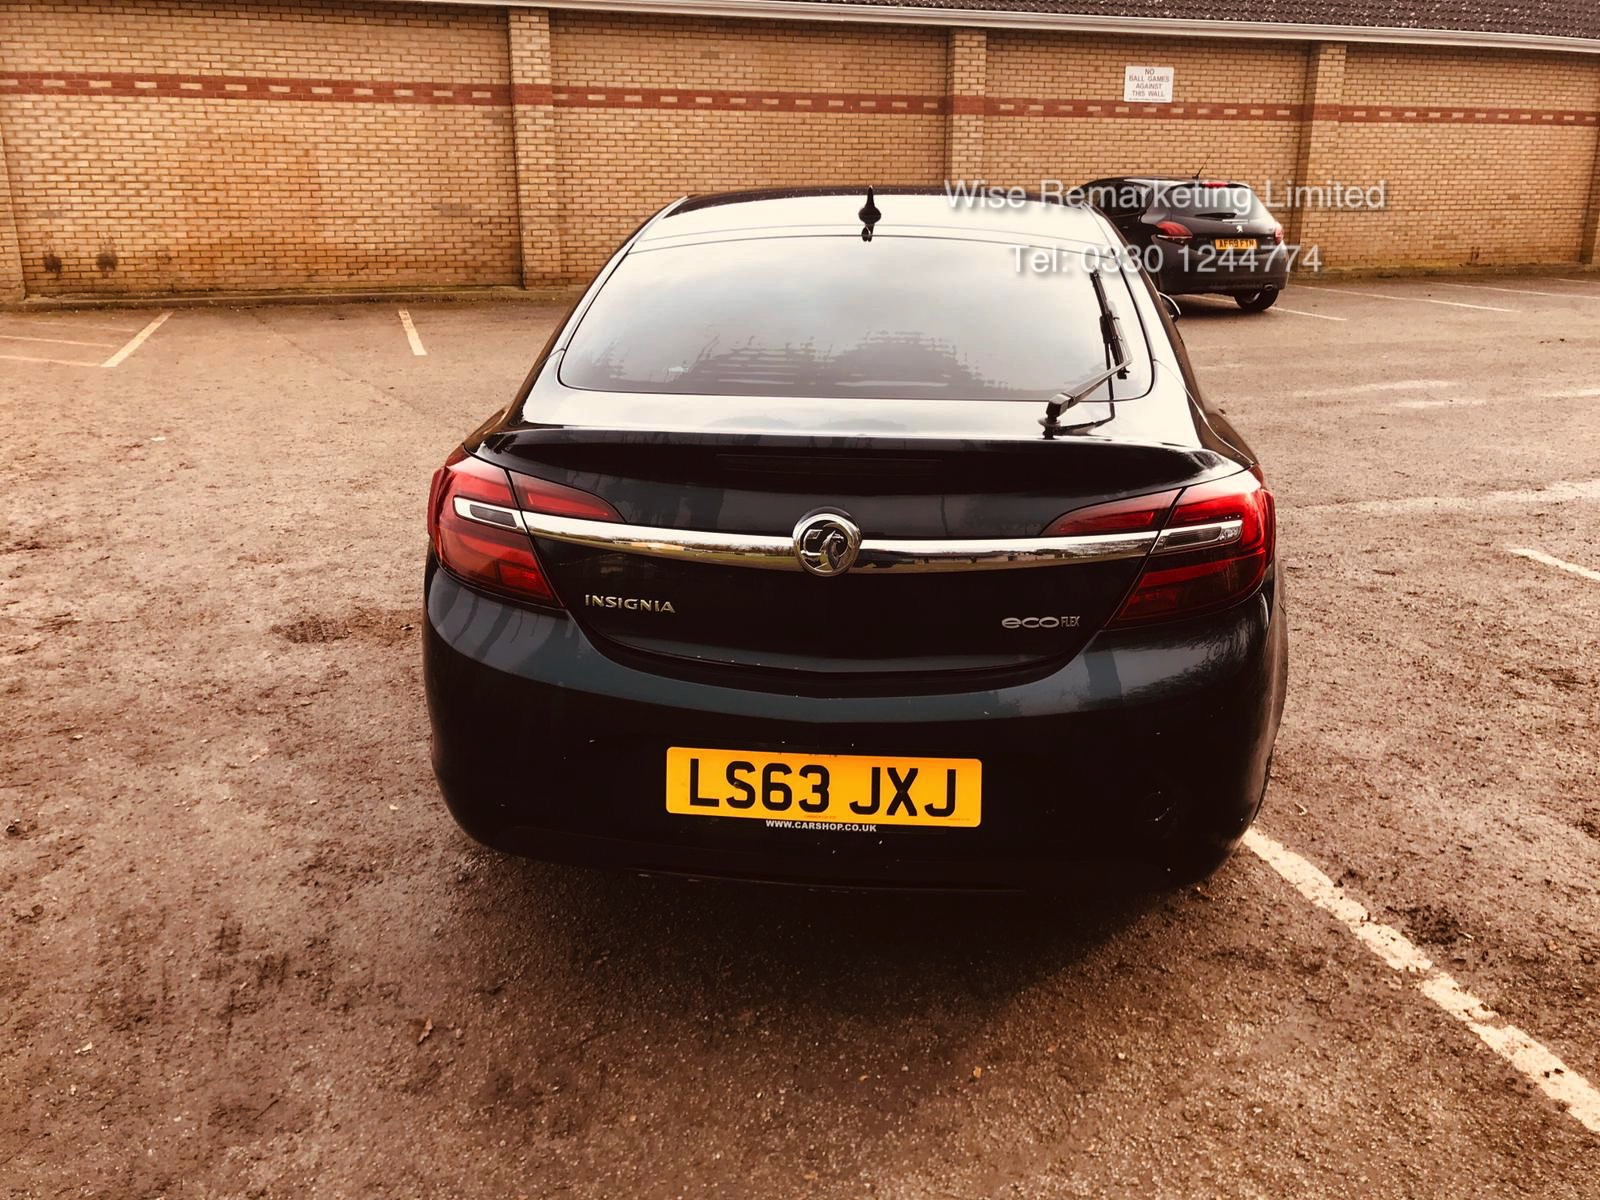 (RESERVE MET) Vauxhall Insignia 2.0 CDTI Techline 6 Speed - 2014 Model - Part Leather - - Image 3 of 20